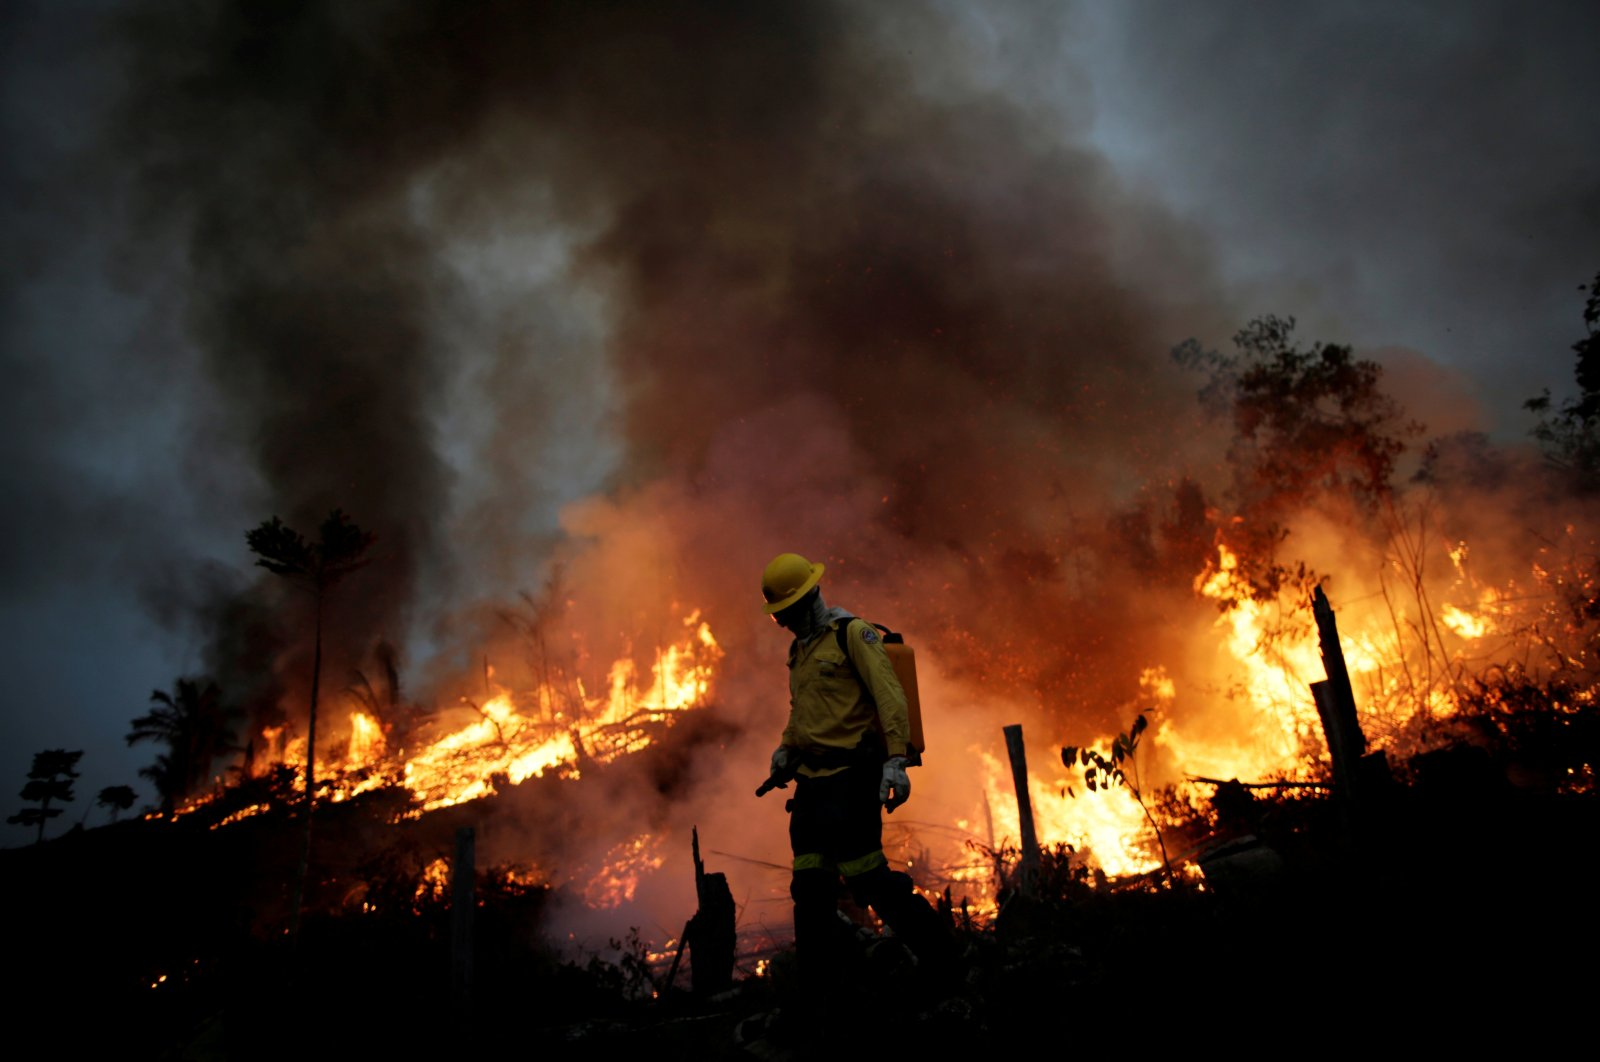 A Brazilian Institute for the Environment and Renewable Natural Resources (IBAMA) fire brigade member attempts to control a fire in a tract of the Amazon jungle in Apui, Amazonas State, Brazil, Aug. 11, 2020. (Reuters Photo)